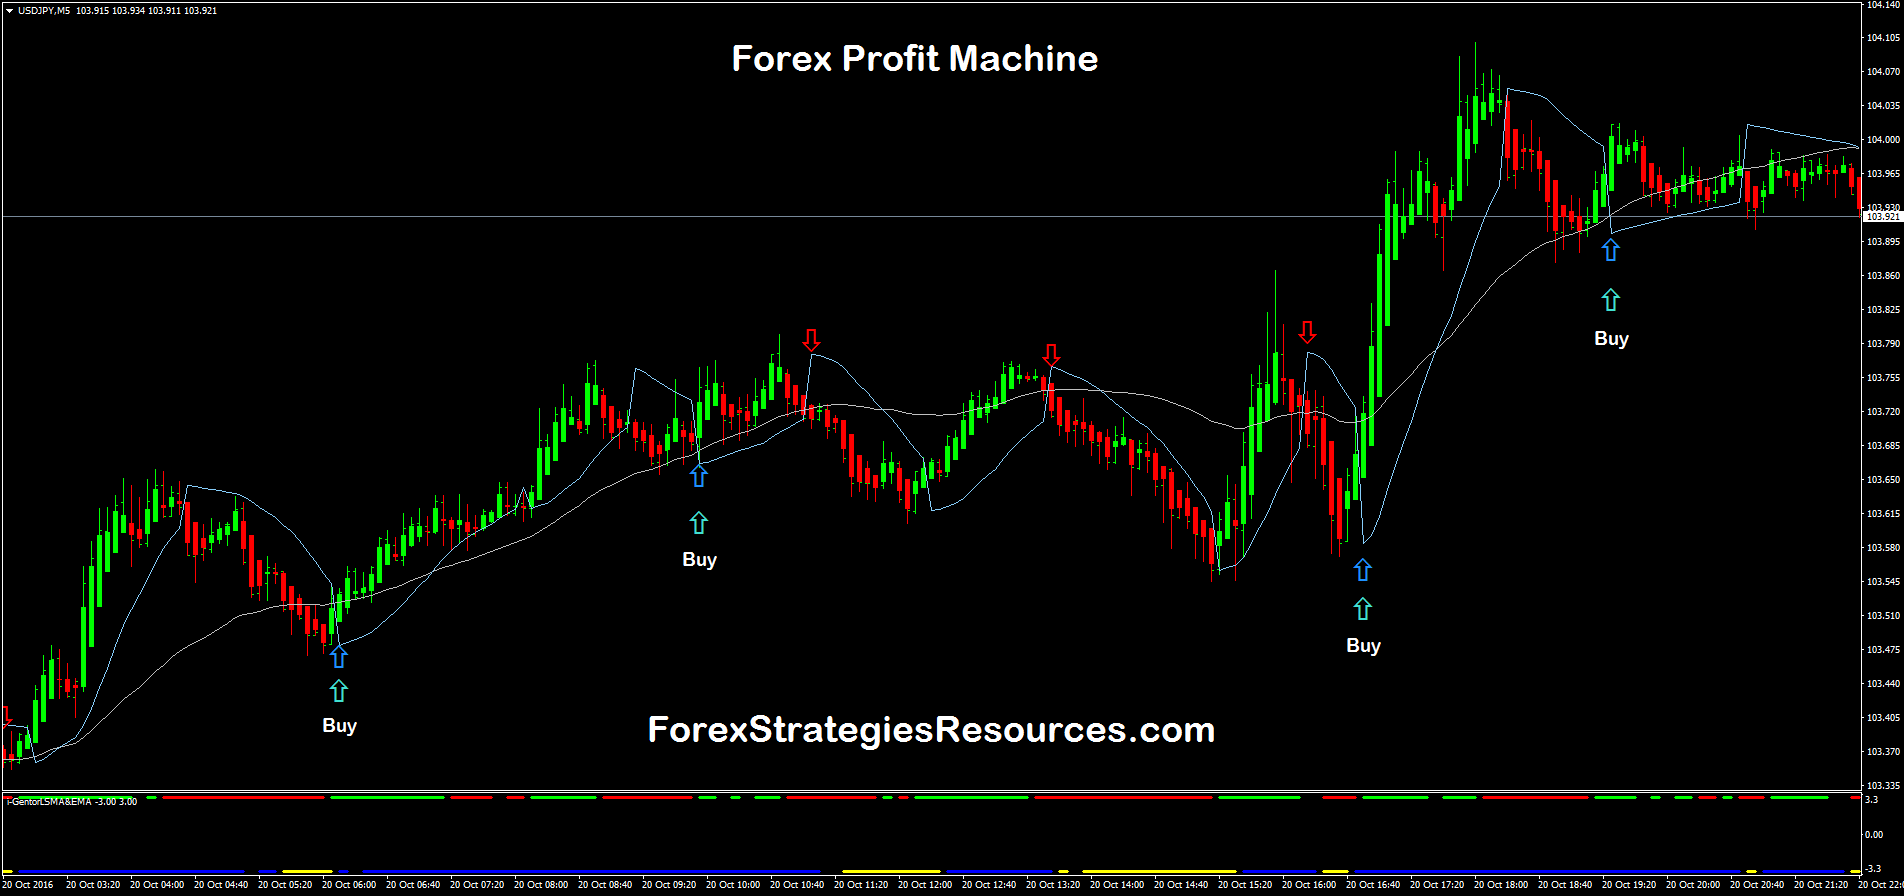 Forex Profit Machine - Forex Strategies - Forex Resources ...